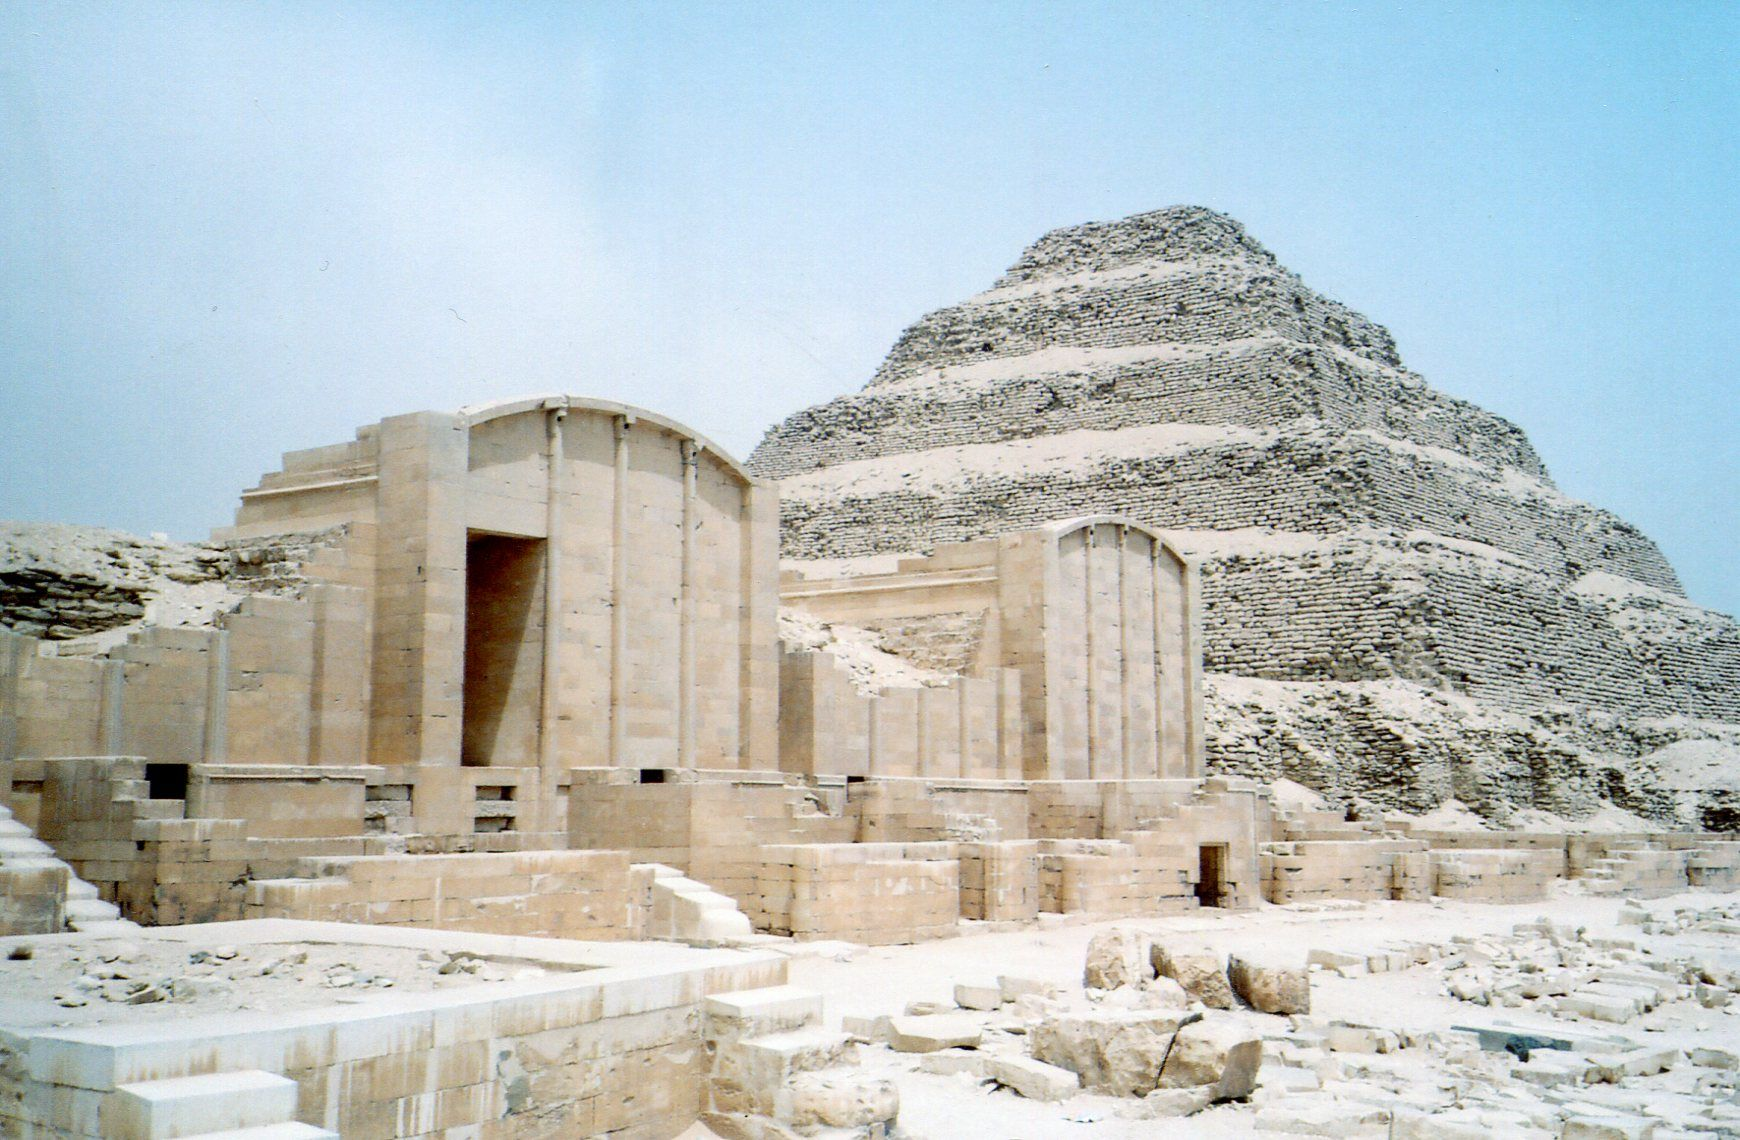 Saqqara is one of the most extensive archaeological sites